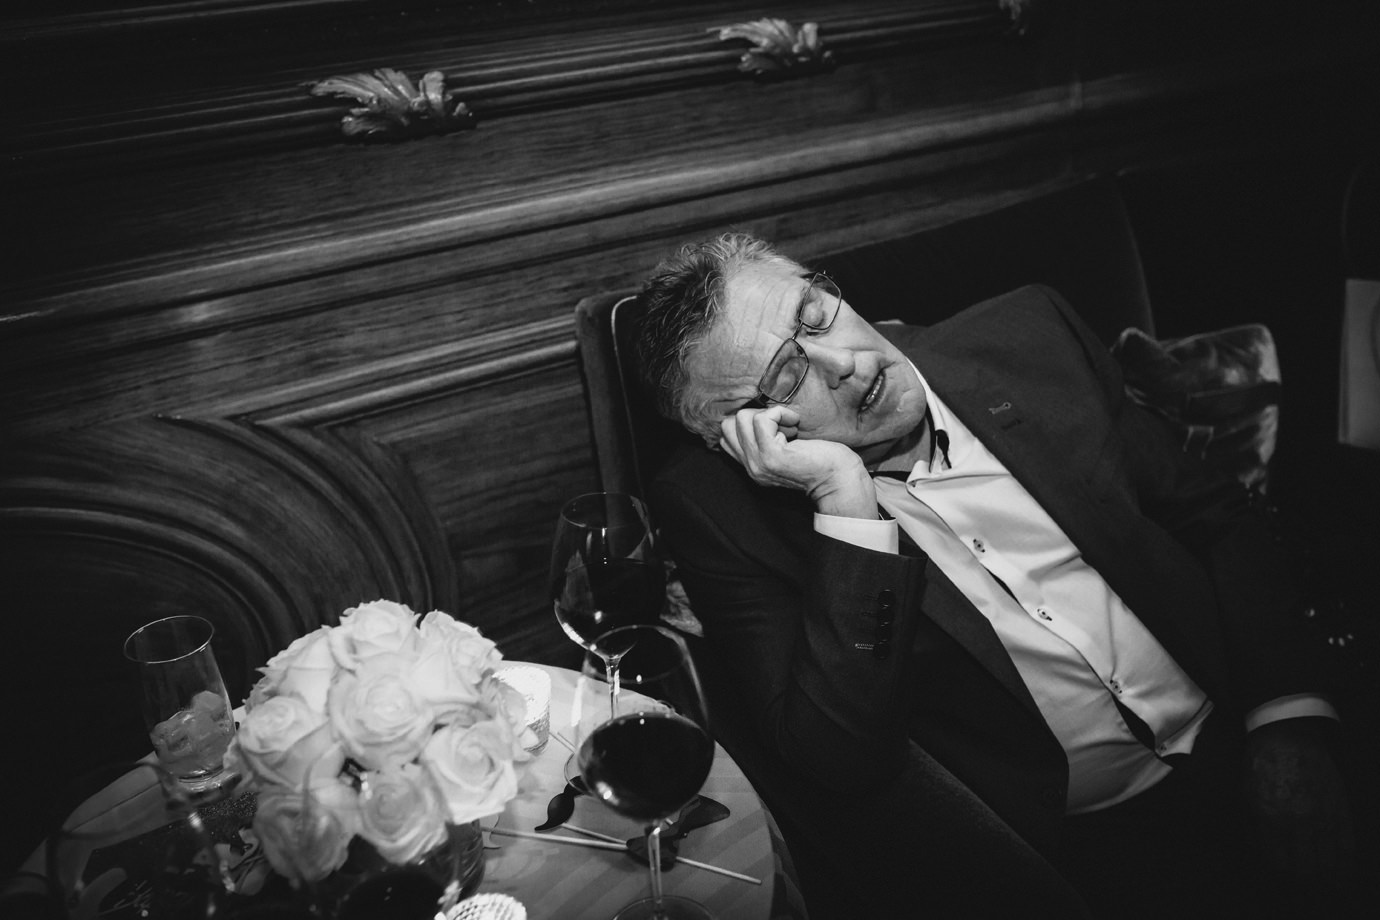 Partied out. Having a snooze during the party. Documentary wedding photography